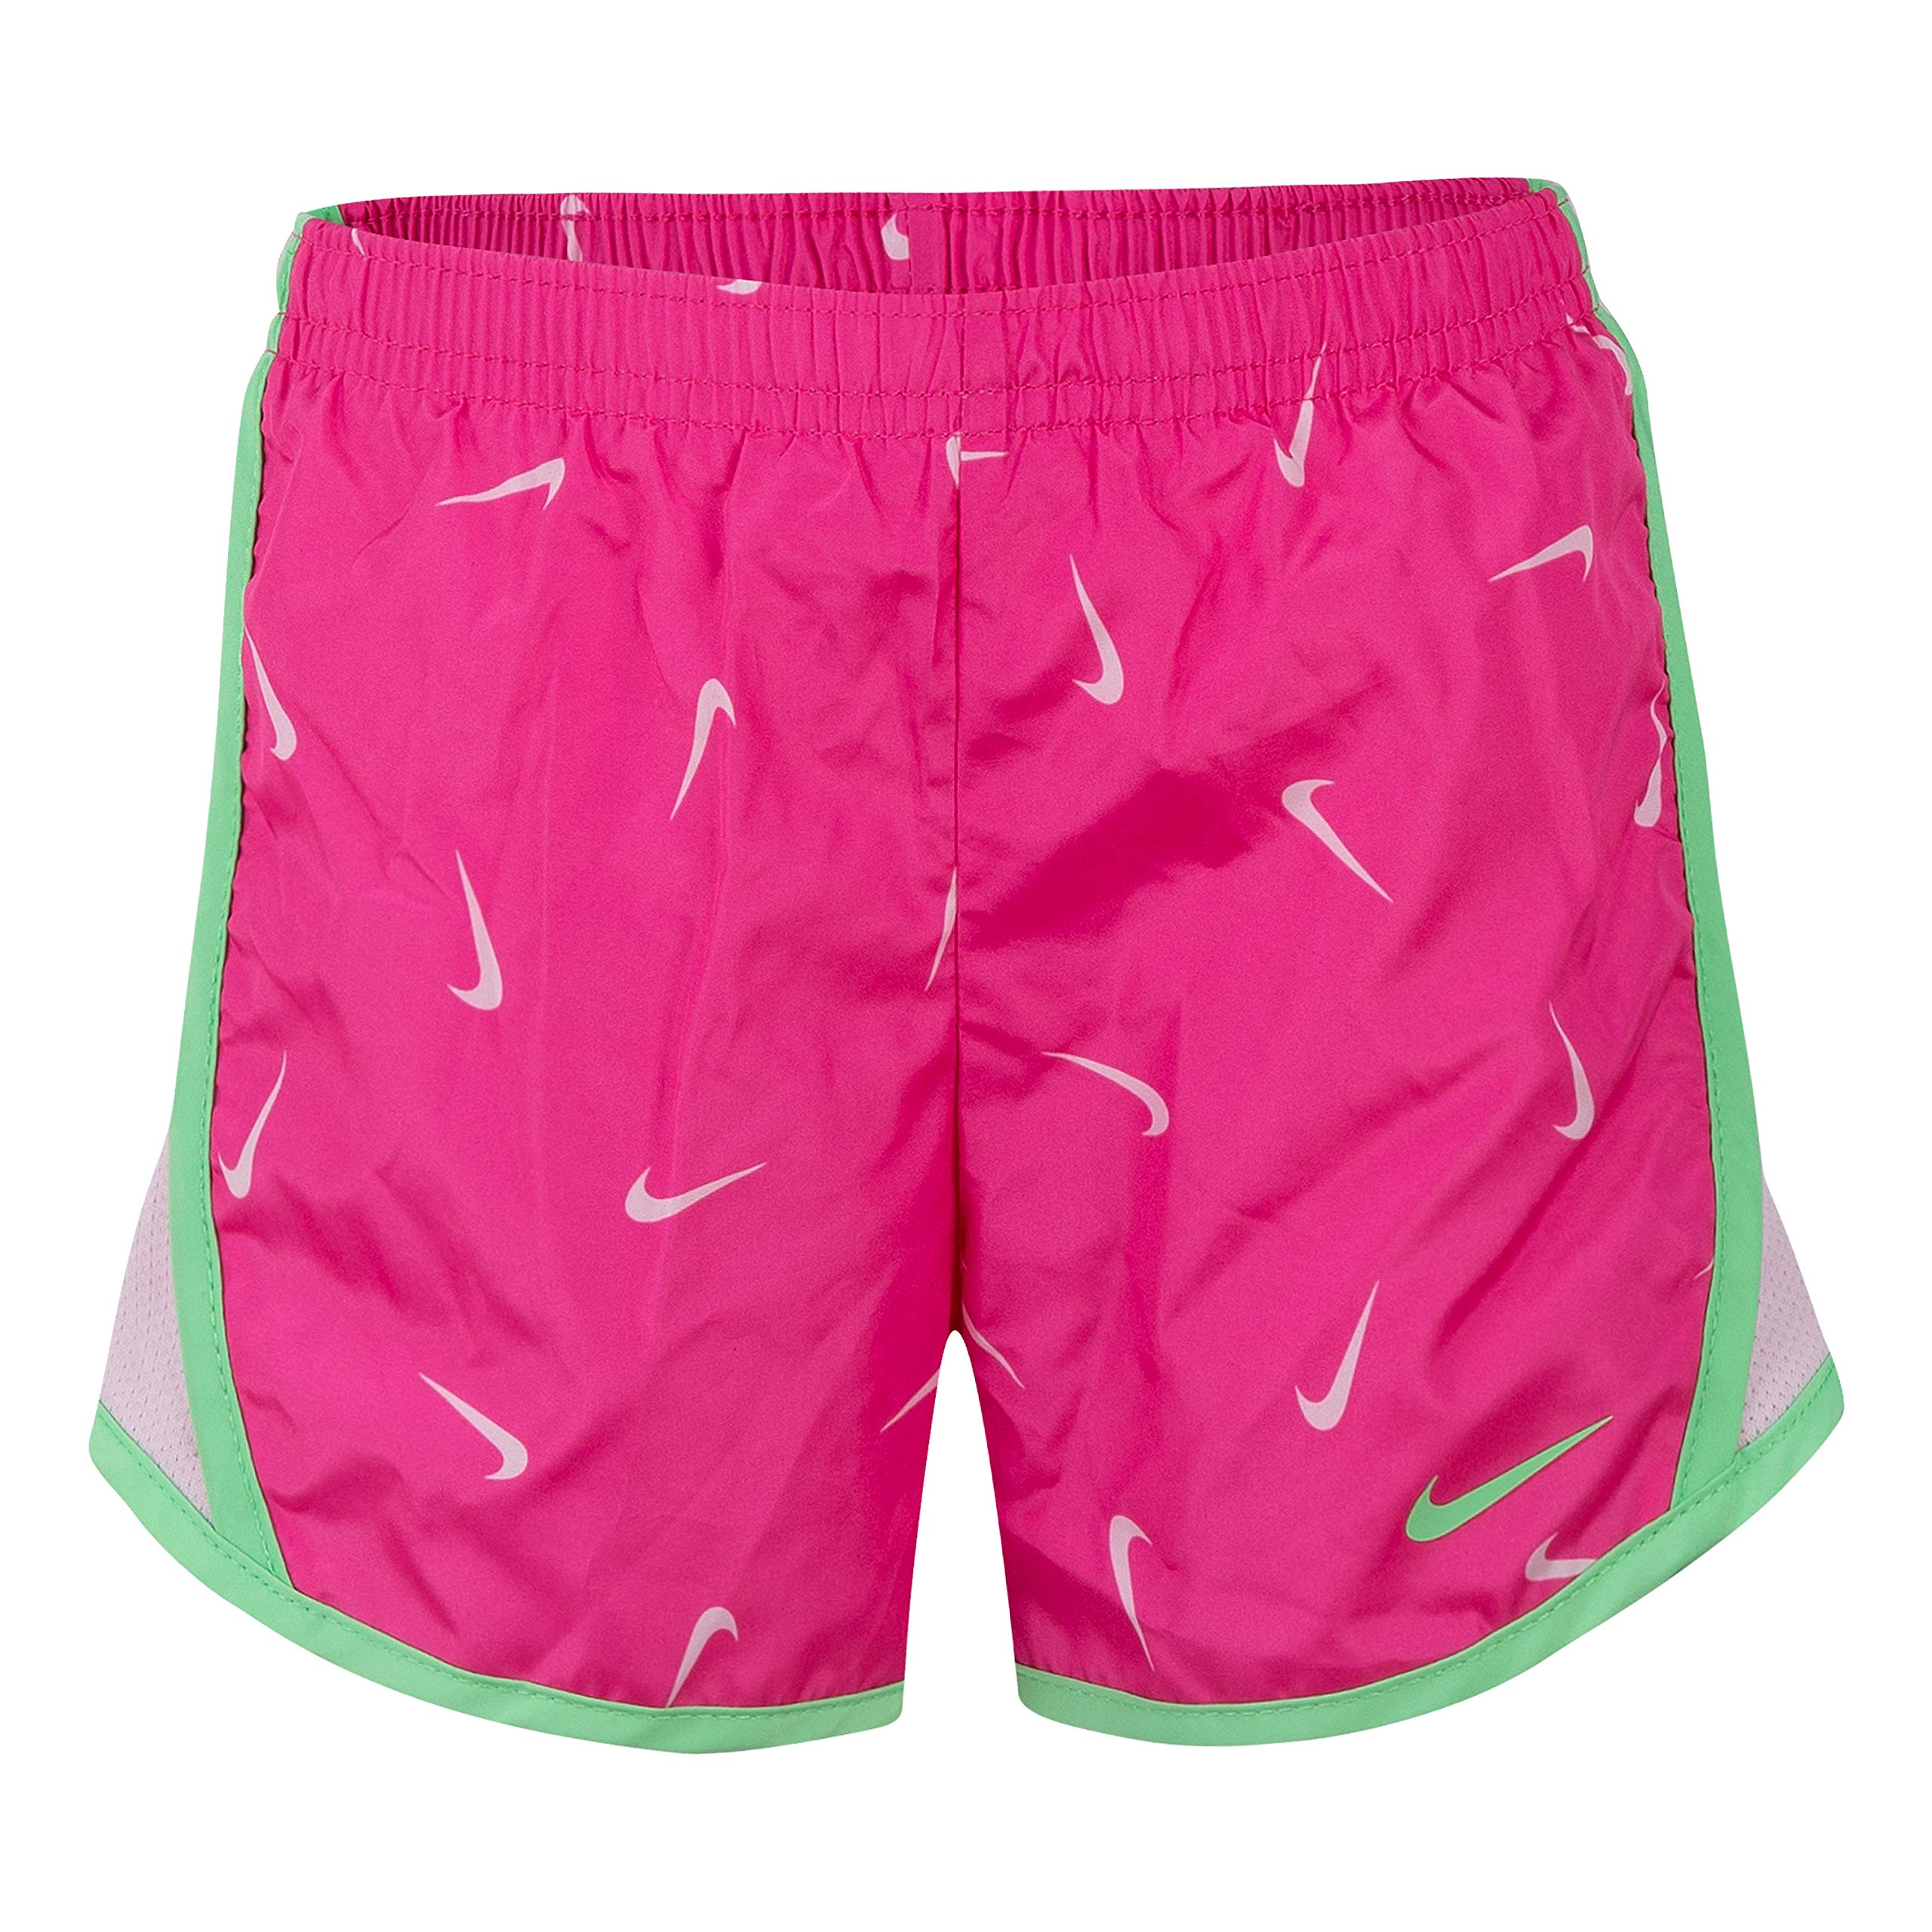 NIKE Children's Apparel Girls' Little Dri-FIT Tempo Shorts, Laser Fuchsia/Green, 6 by NIKE Children's Apparel